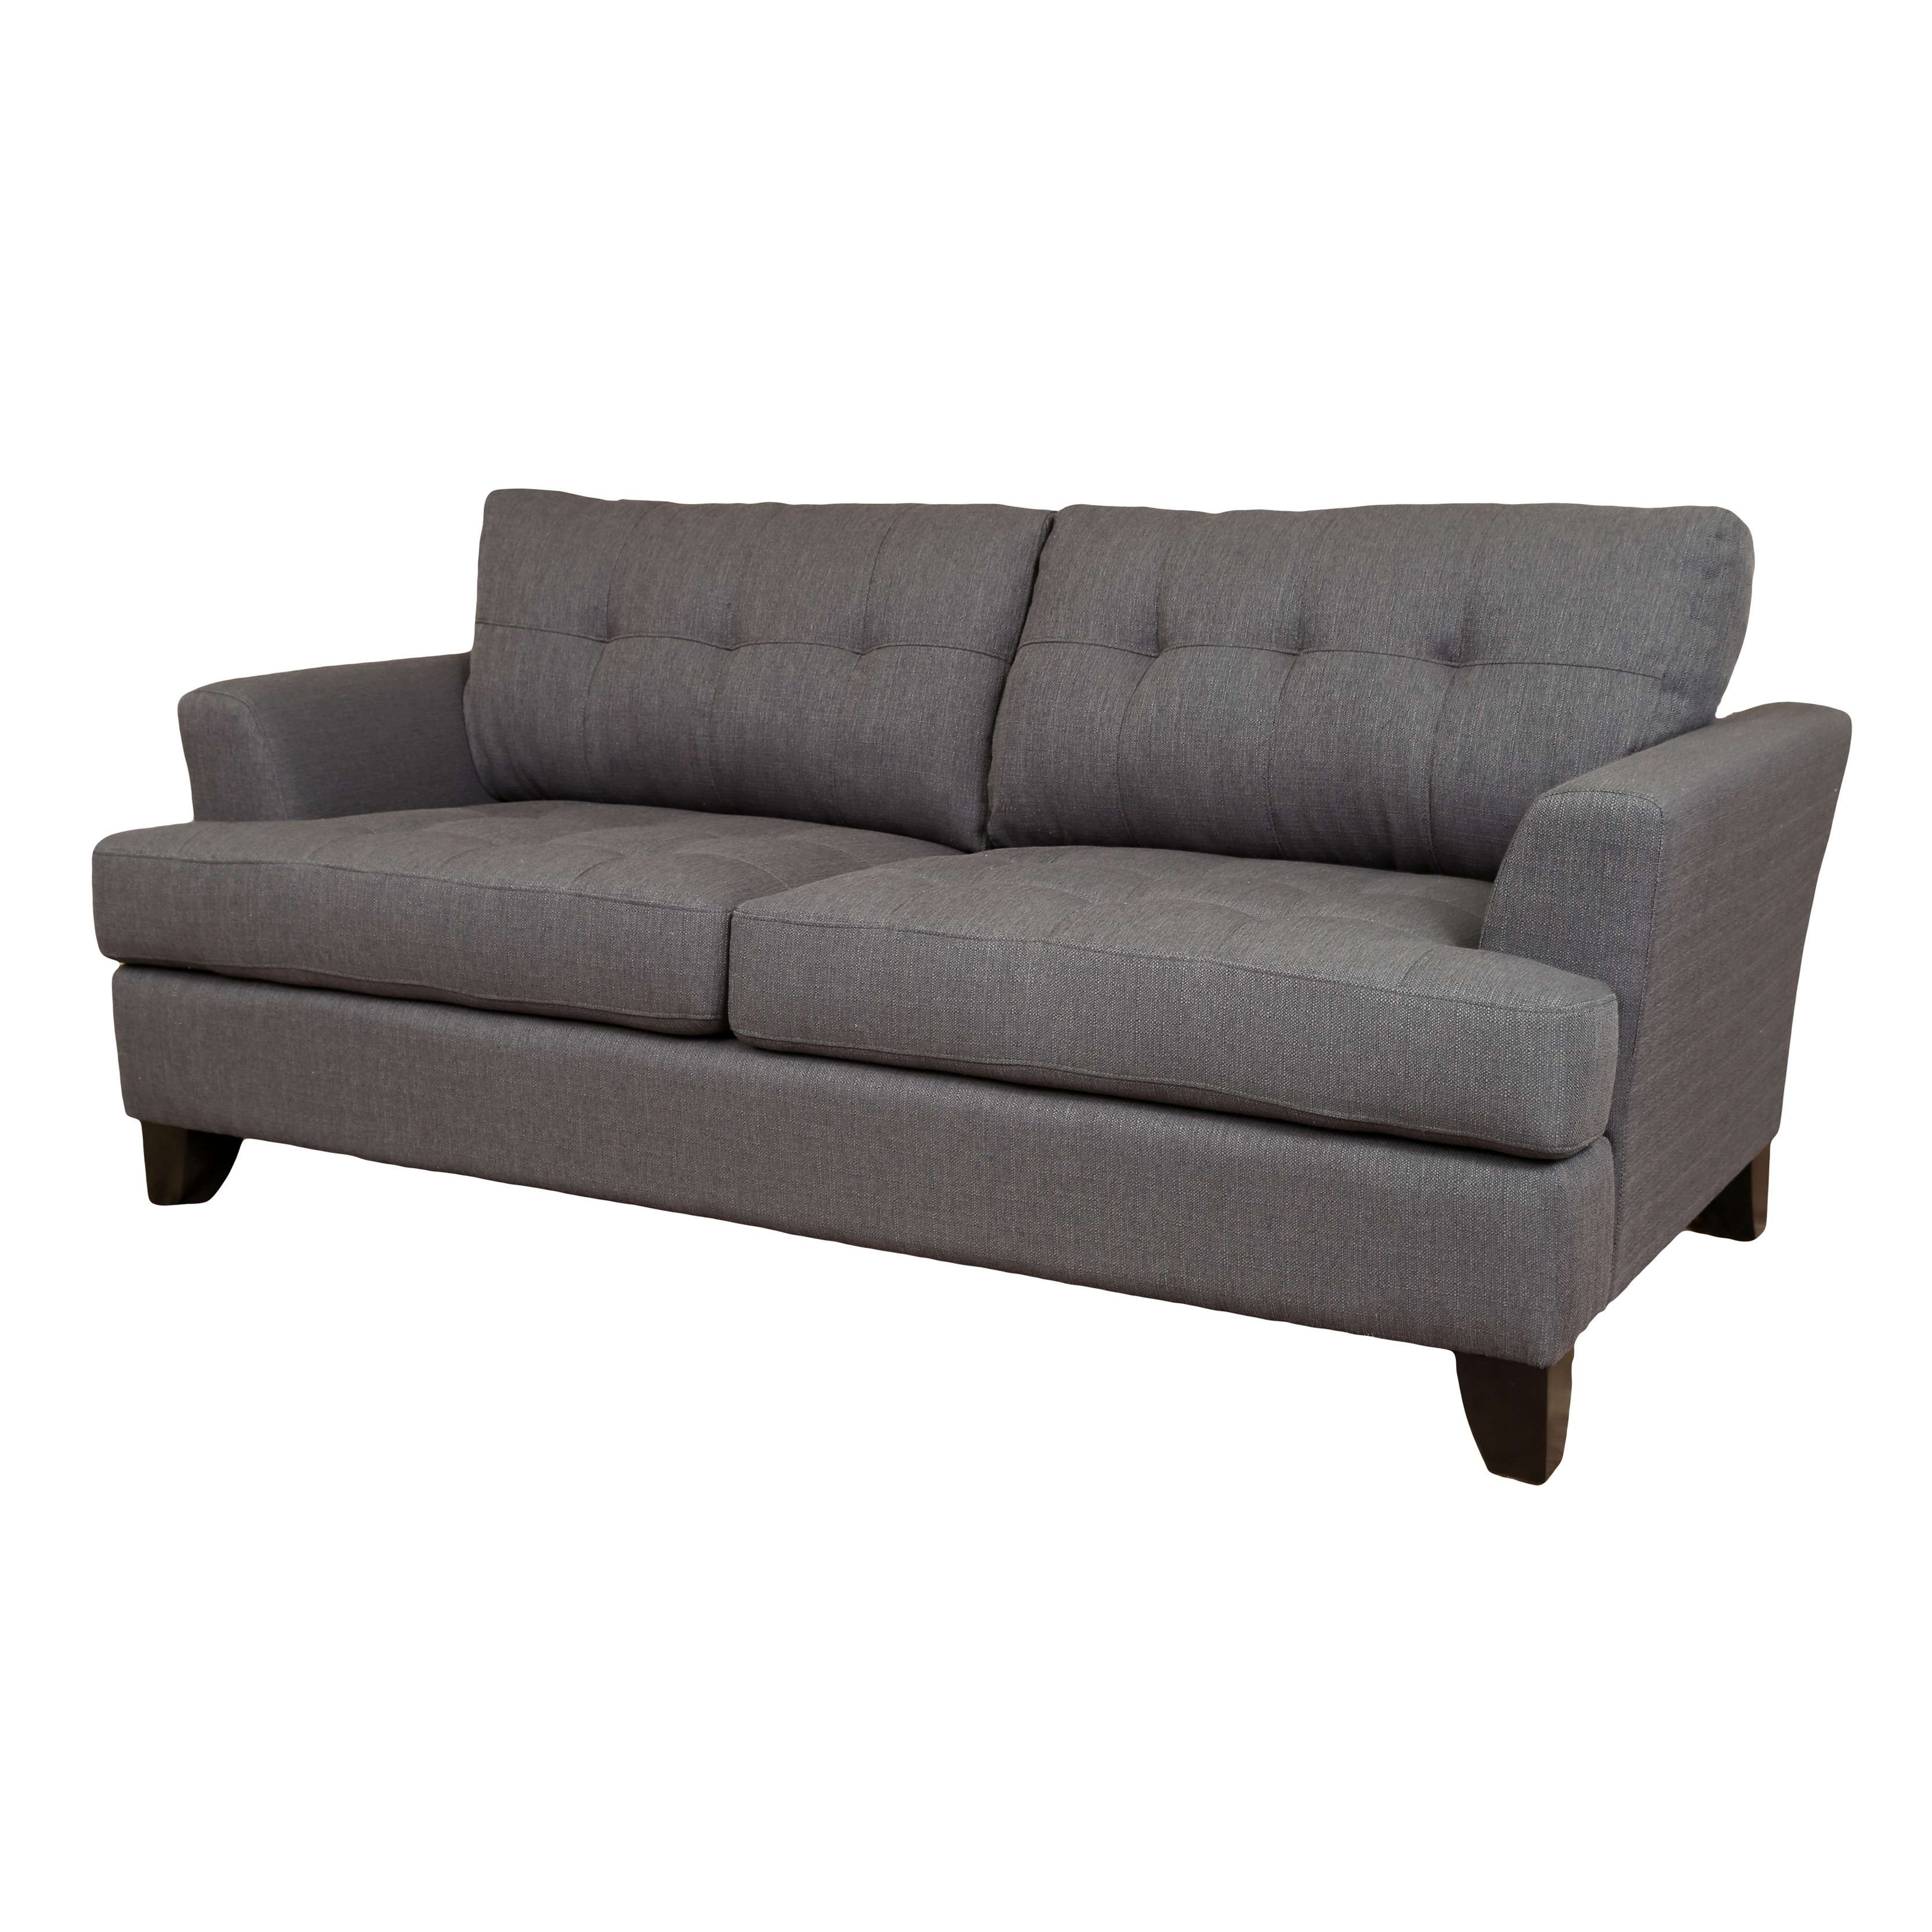 Gentil Porter Norwich Charcoal Grey Contemporary Modern Polyester Sofa With 2  Matching Throw Pillows